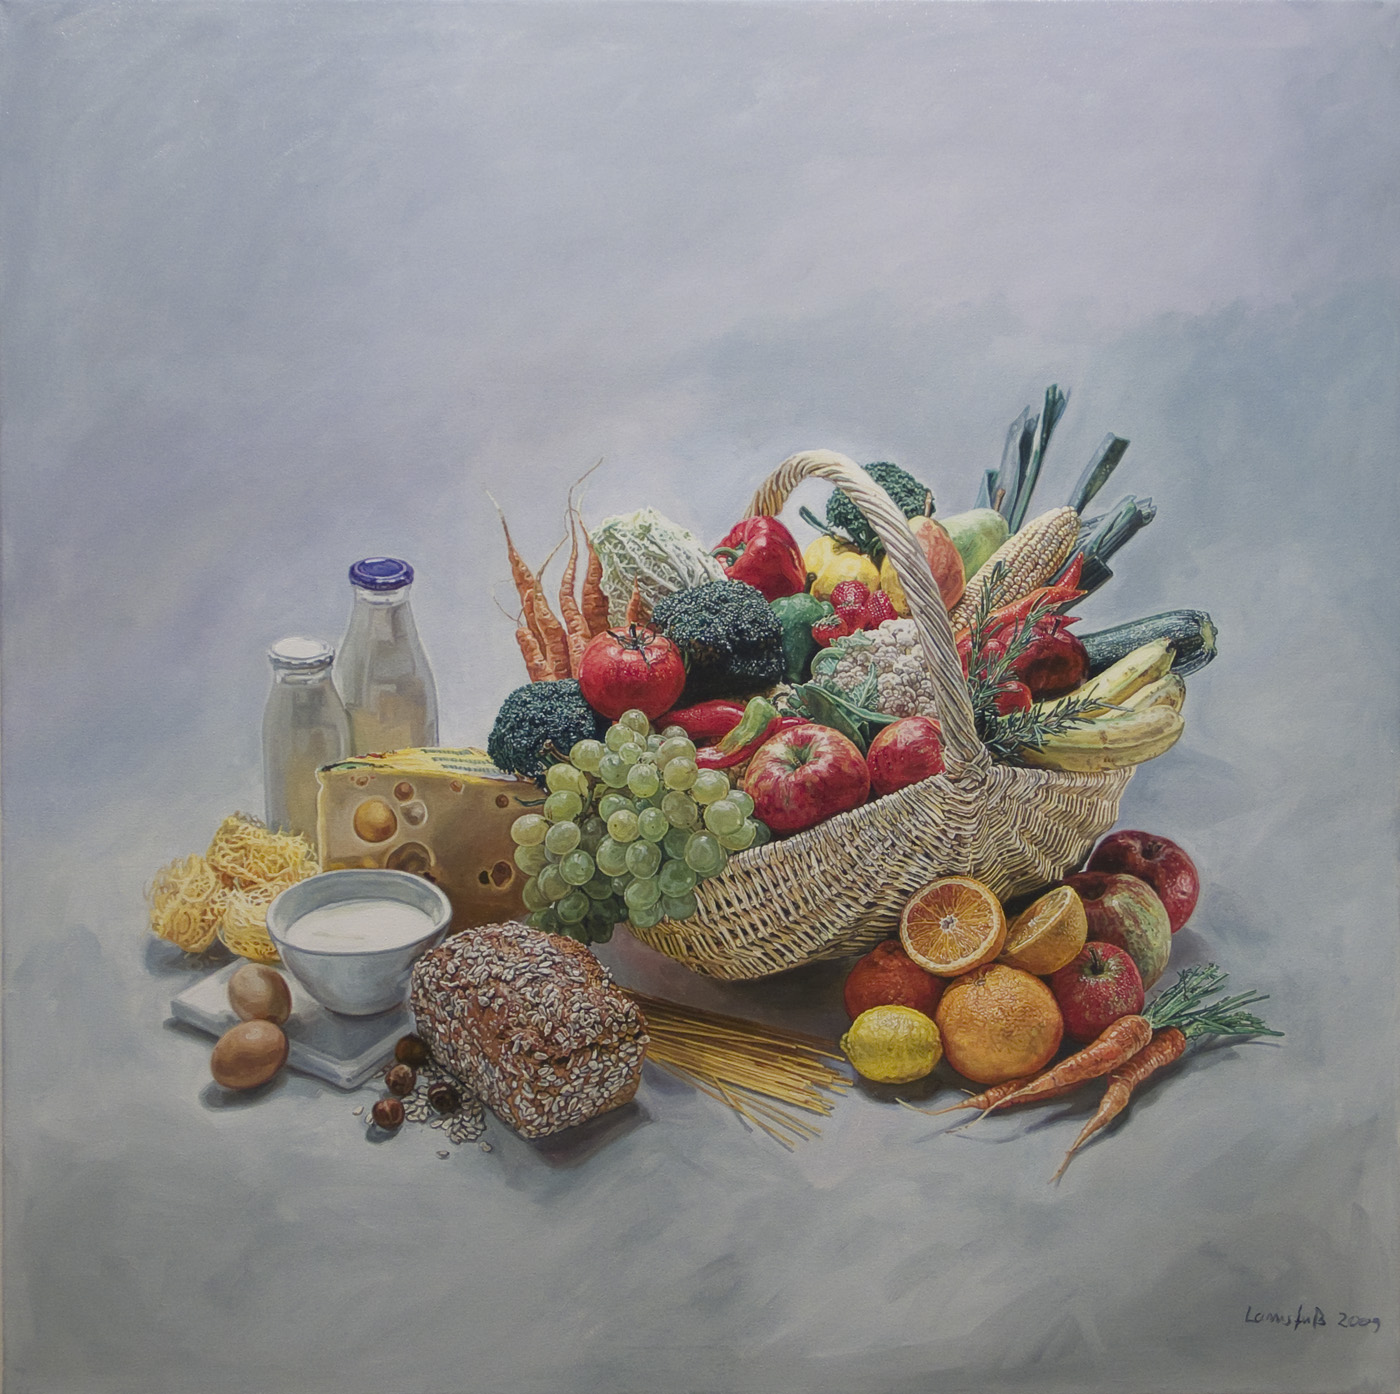 Ulrich Lamsfuss   Stockfood 15891 , 2009 oil on canvas 43.31 x 43.31 inches 110 x 110 cm